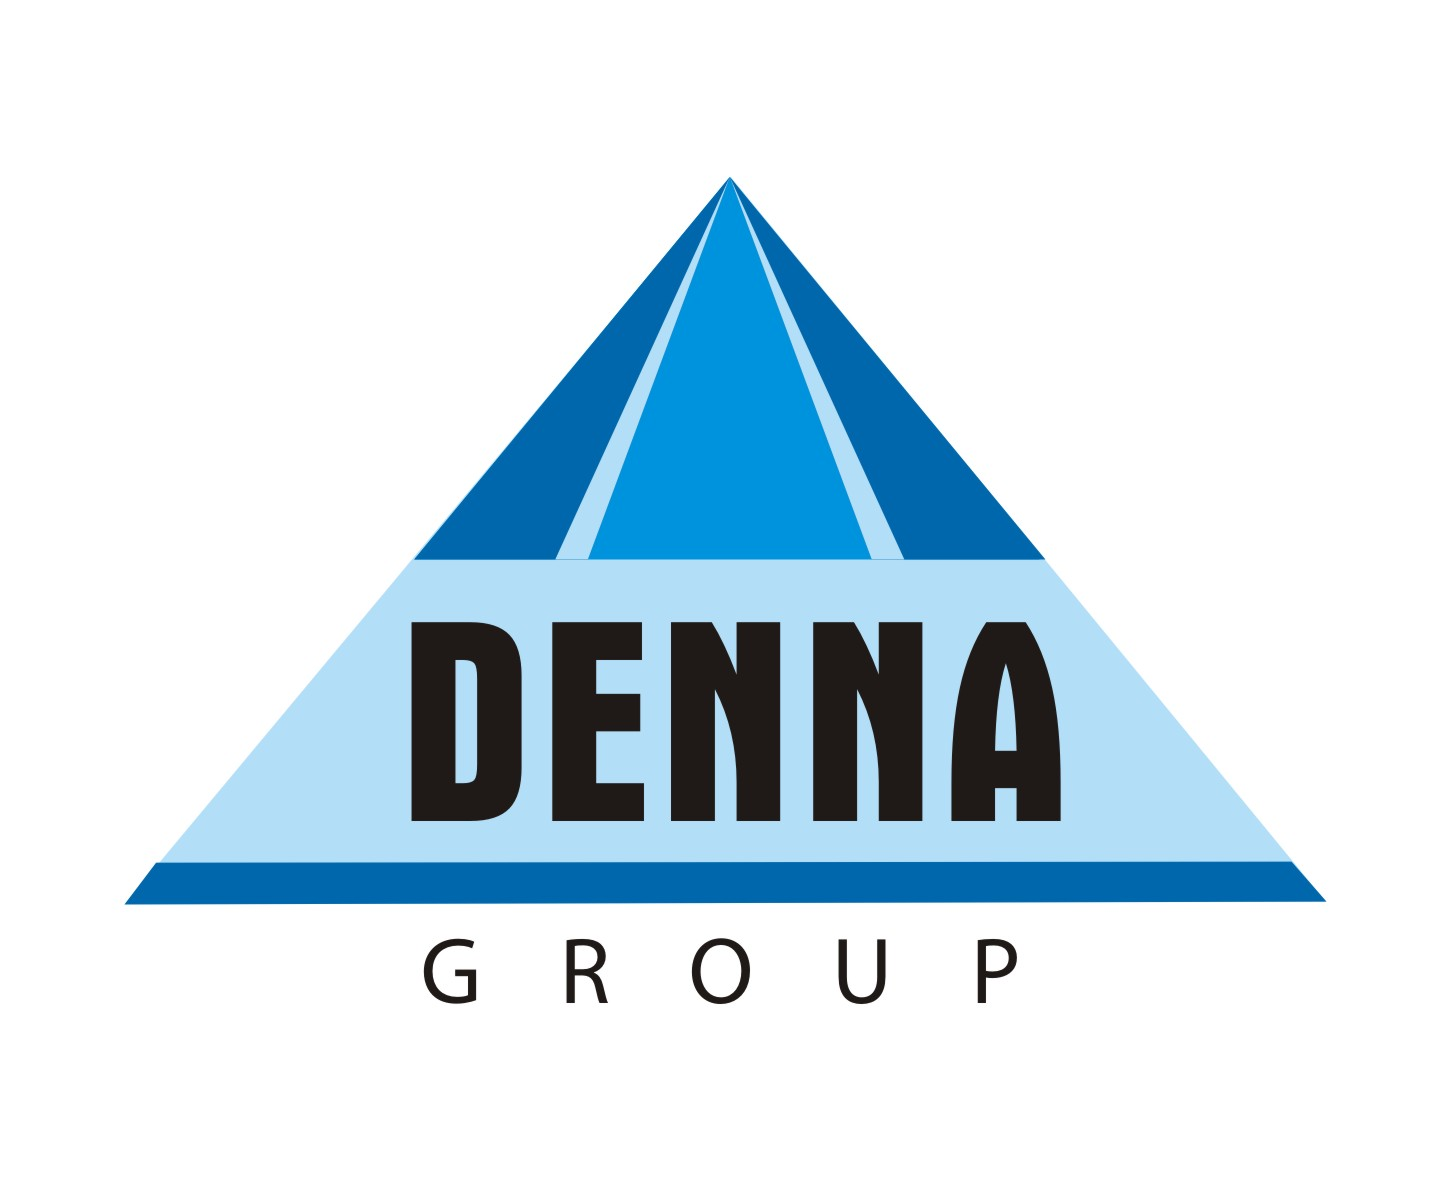 Logo Design by Mahida Kirit Chandrasinh - Entry No. 124 in the Logo Design Contest Denna Group Logo Design.